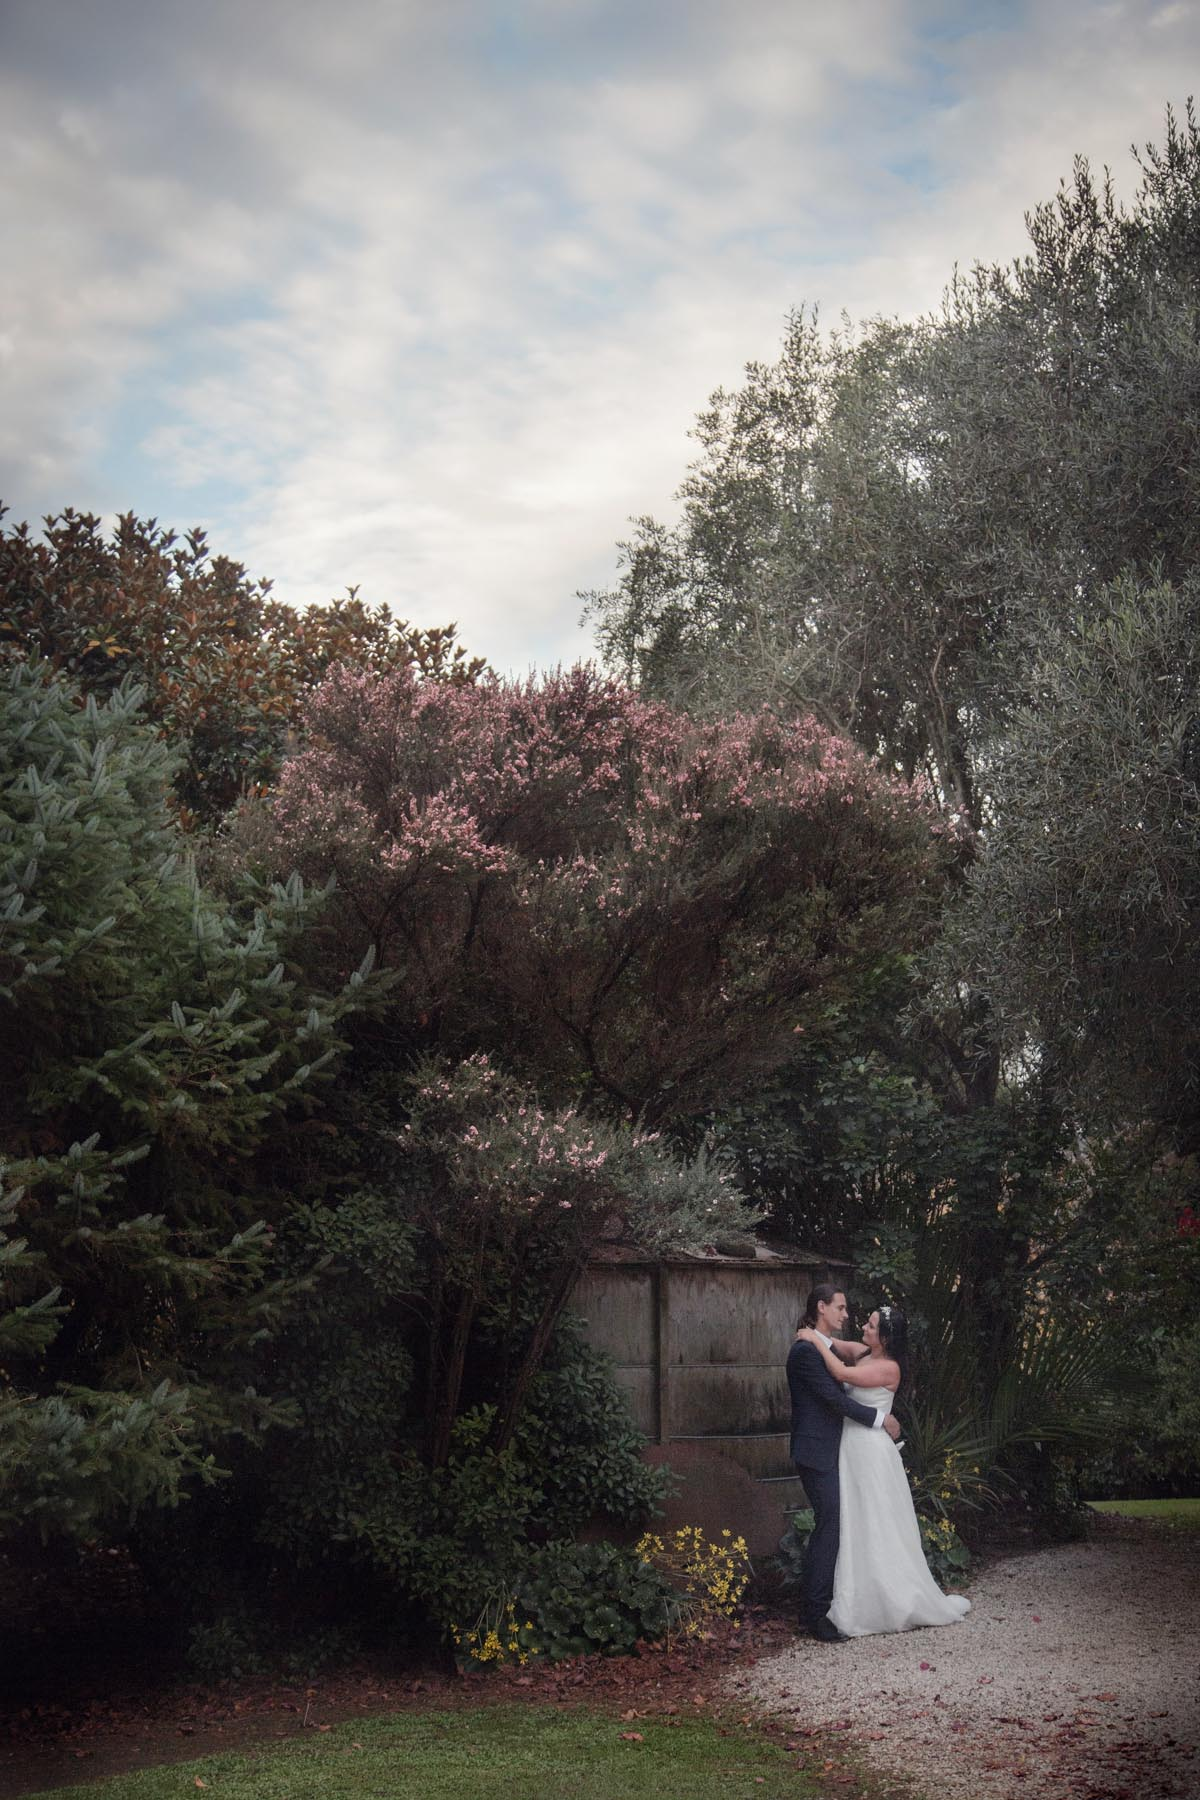 Bride wearing traditional white wedding dress and her new husband wearing a black suit embrace infront of a flowering Manuka tree in the gardens for their wedding photos at Kumeu Valley Estate